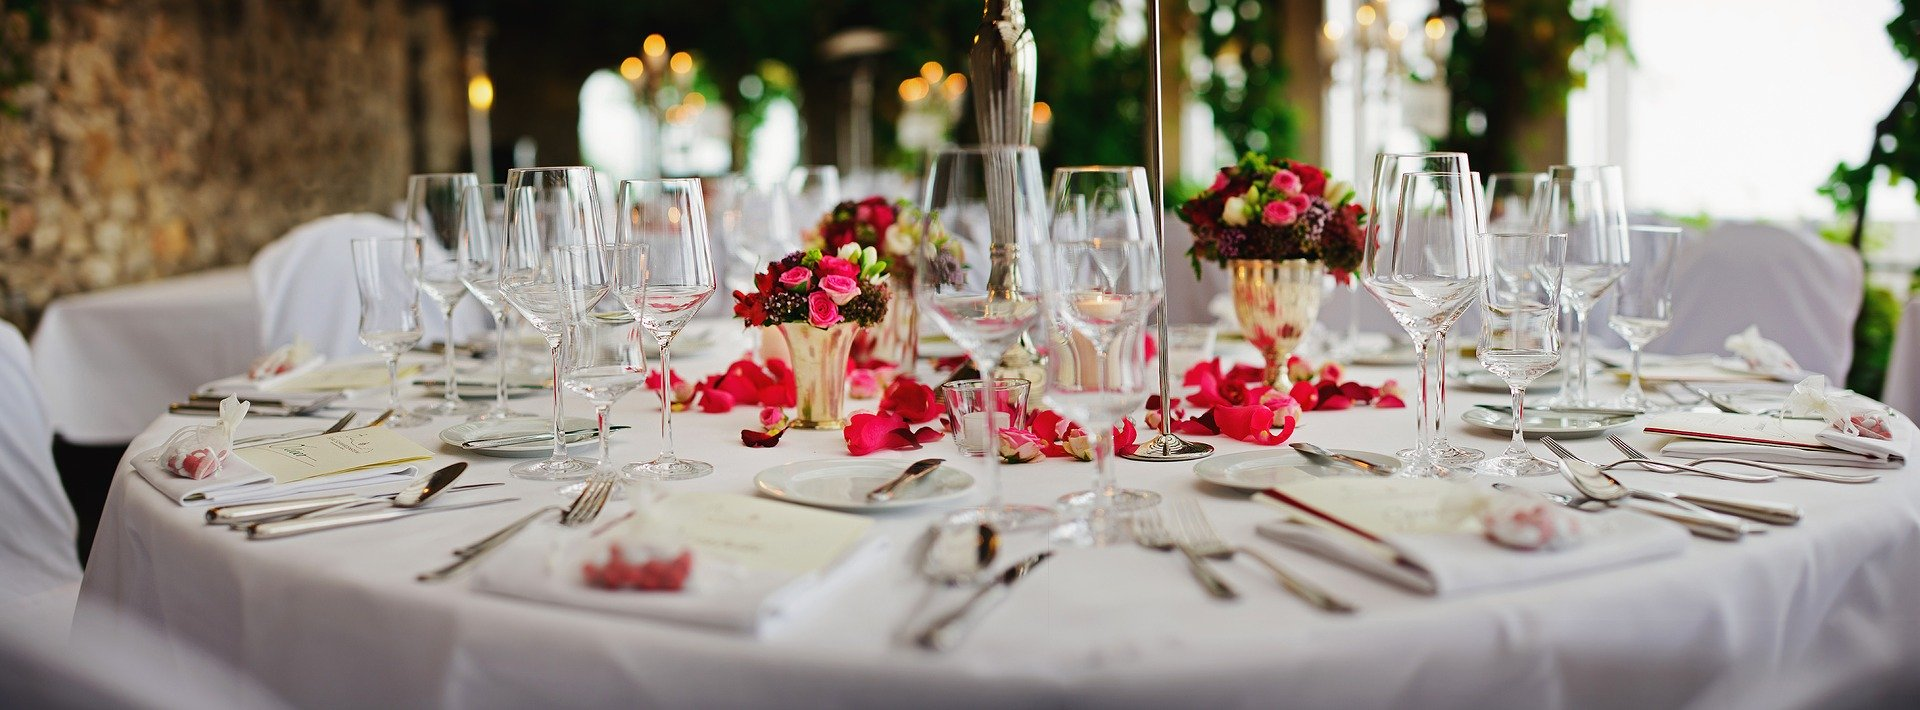 5 Tips to Plan a Successful Wedding Event Themes and Venues